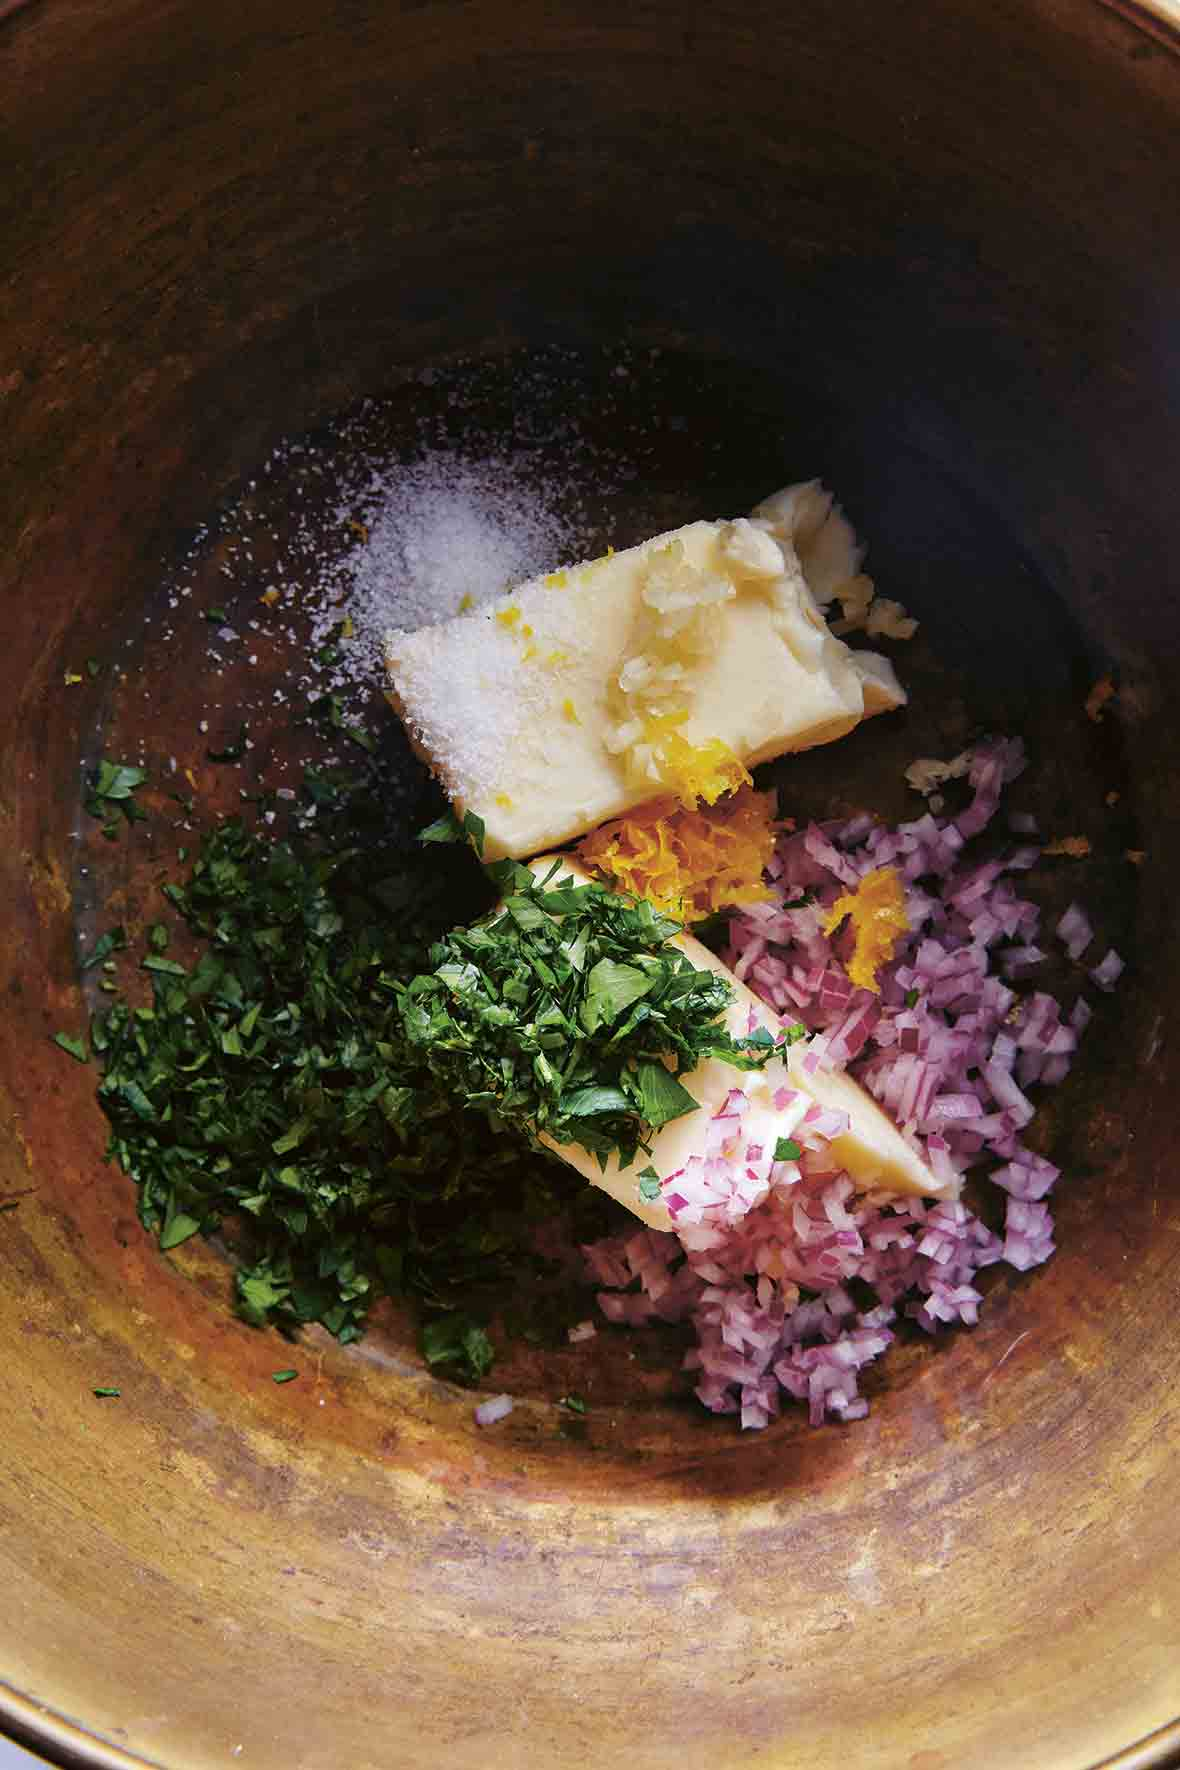 A clay bowl filled with butter, parsley, red onion, lemon zest, orange zest, and salt